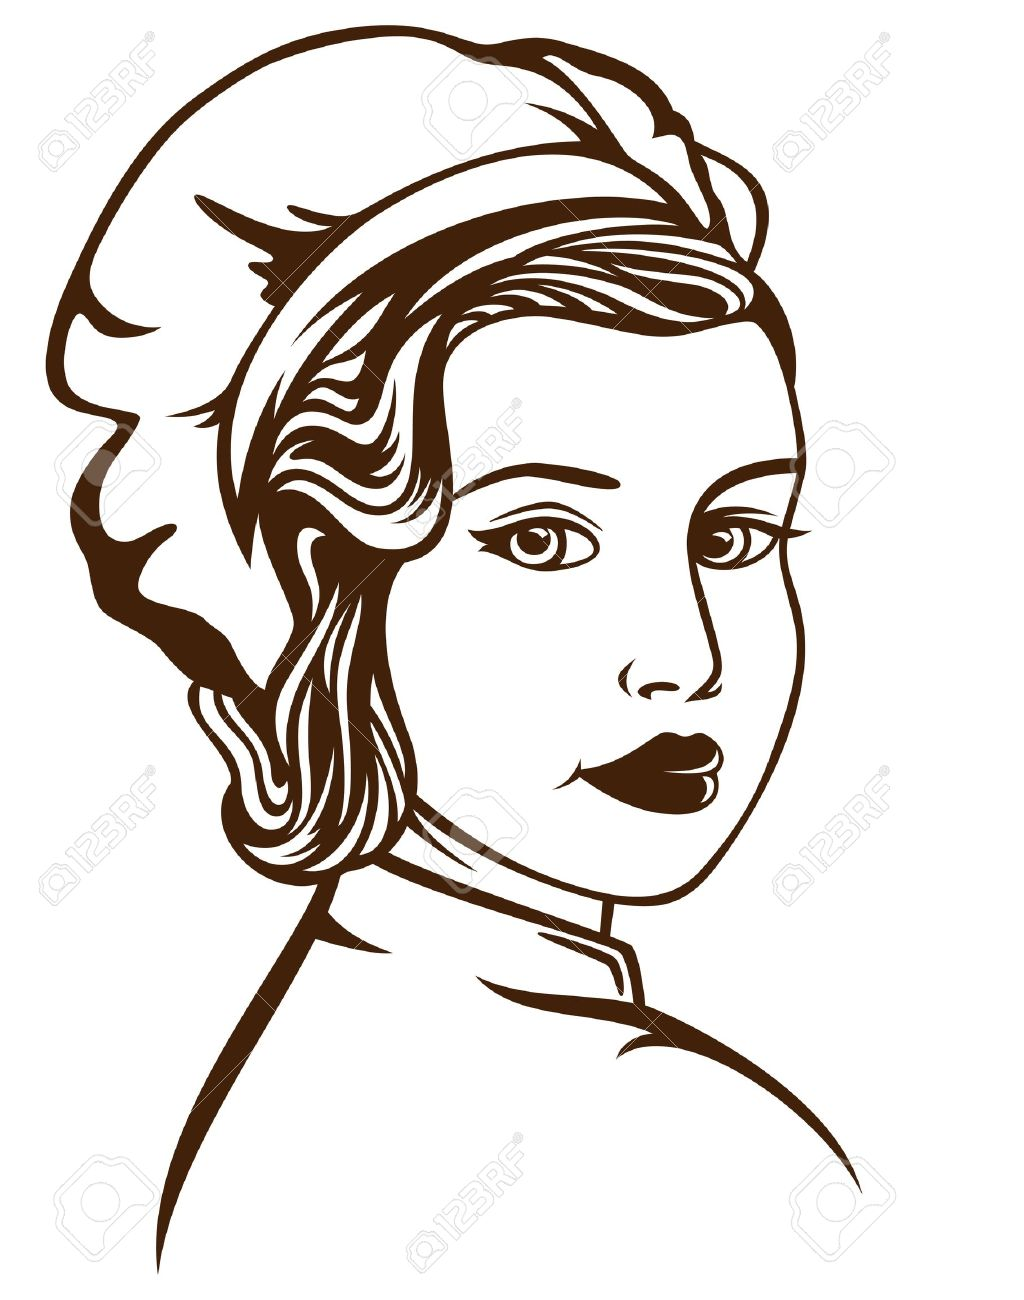 Retro Style Female Chef Vector Illustration - Monochrome Outline ...